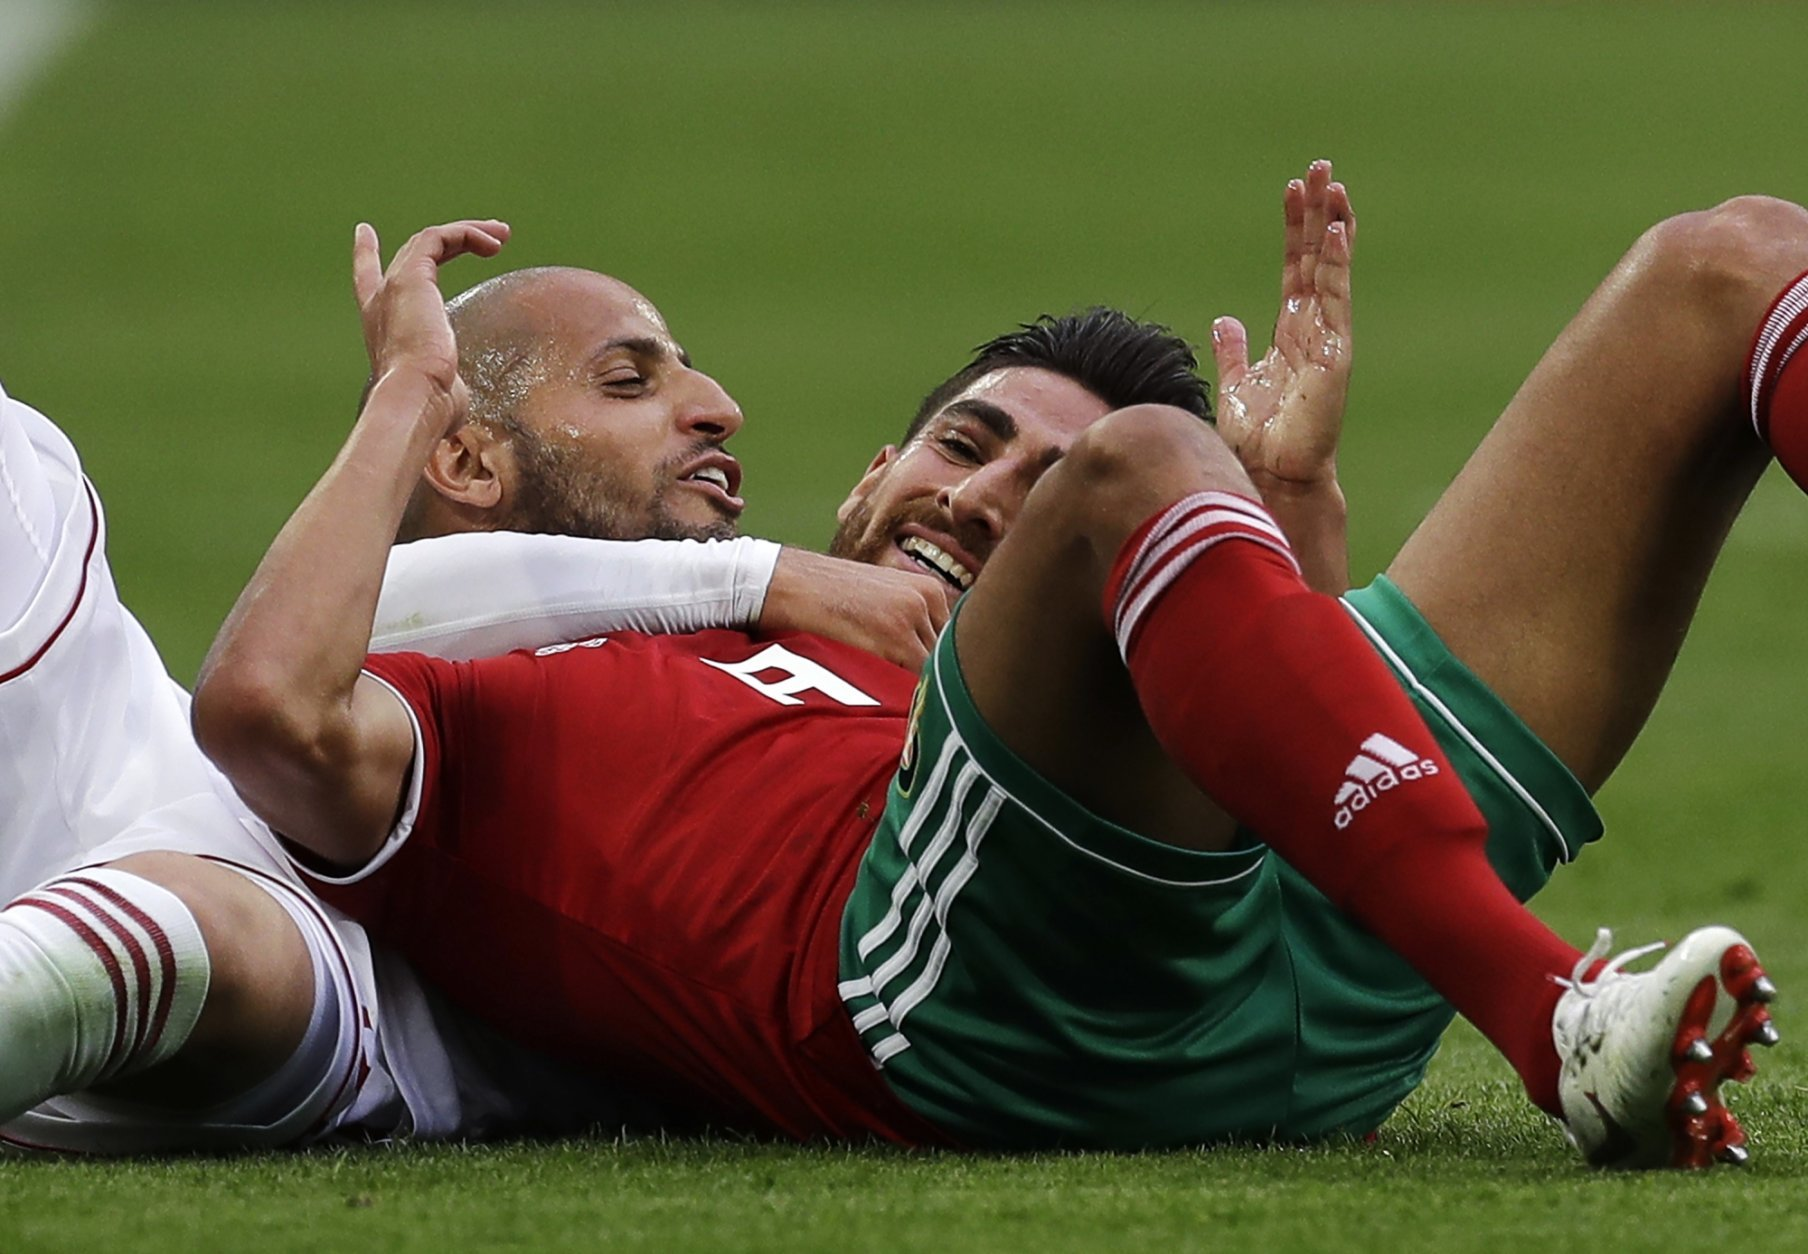 Morocco's Ayoub El Kaabi, front, and Iran's Alireza Jahanbakhsh, rear, smile after they collide to compete the ball during the group B match between Morocco and Iran at the 2018 soccer World Cup in the St. Petersburg Stadium in St. Petersburg, Russia, Friday, June 15, 2018. (AP Photo/Themba Hadebe)